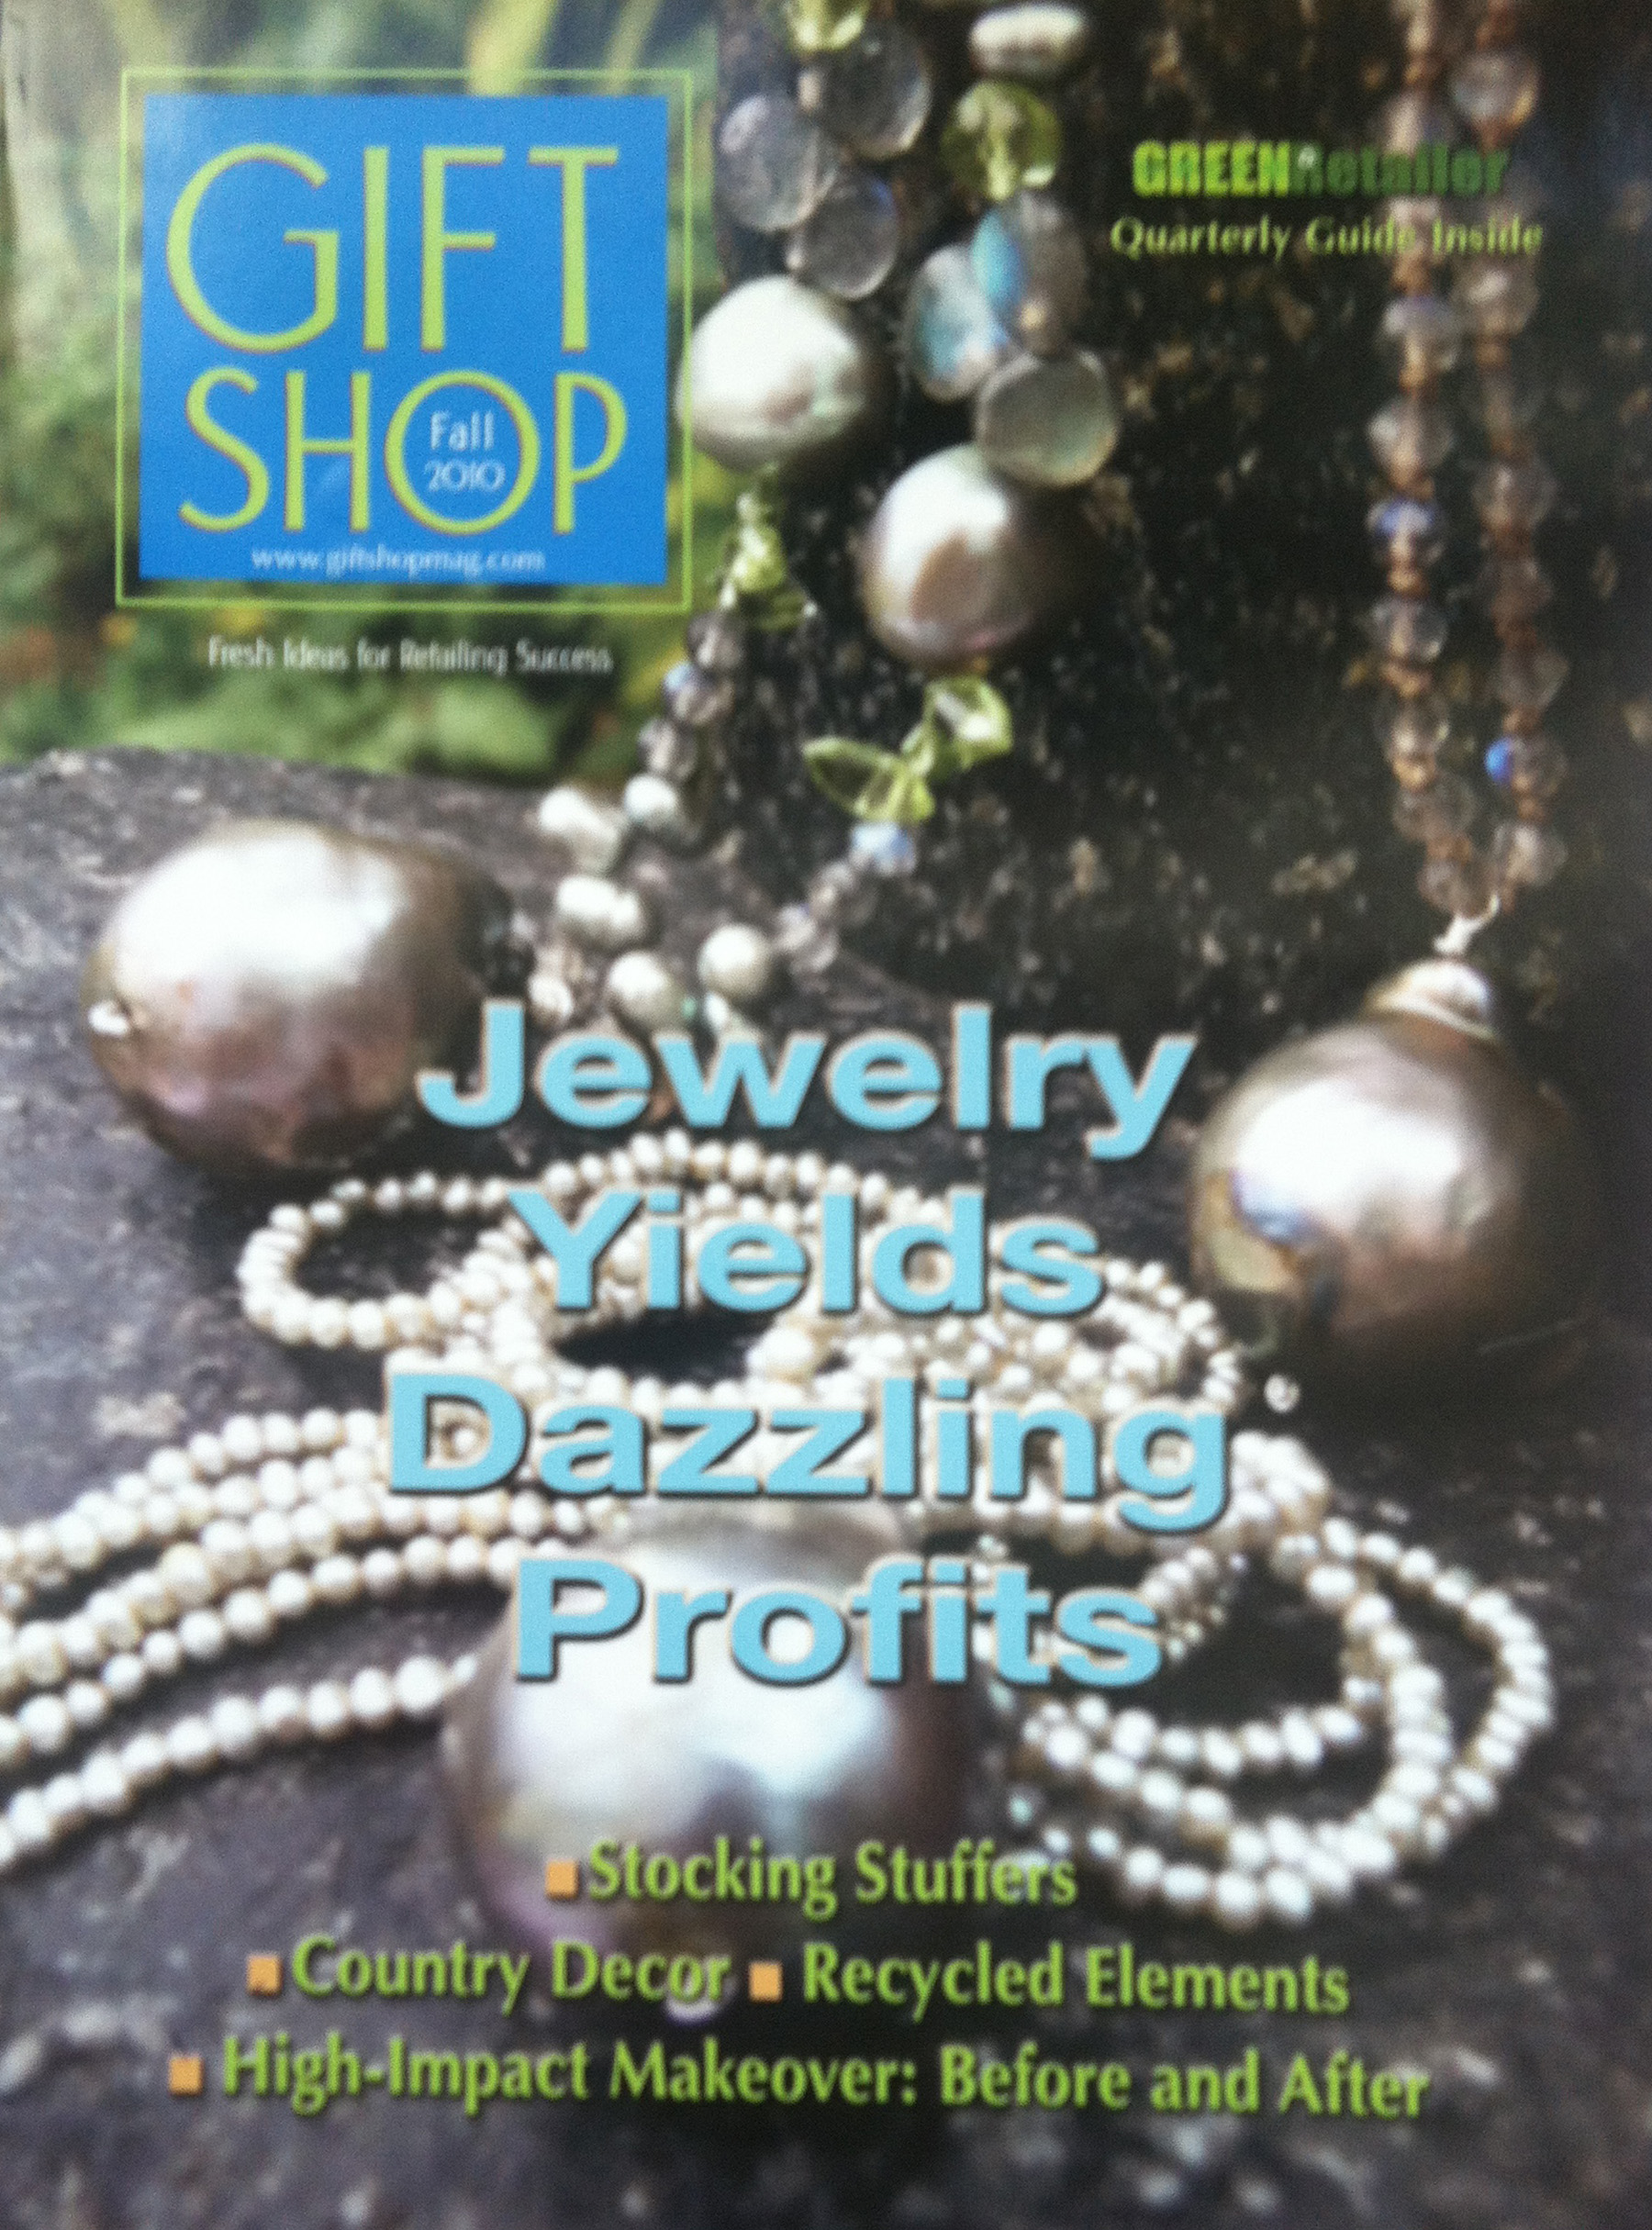 gift-shop-cover.jpg